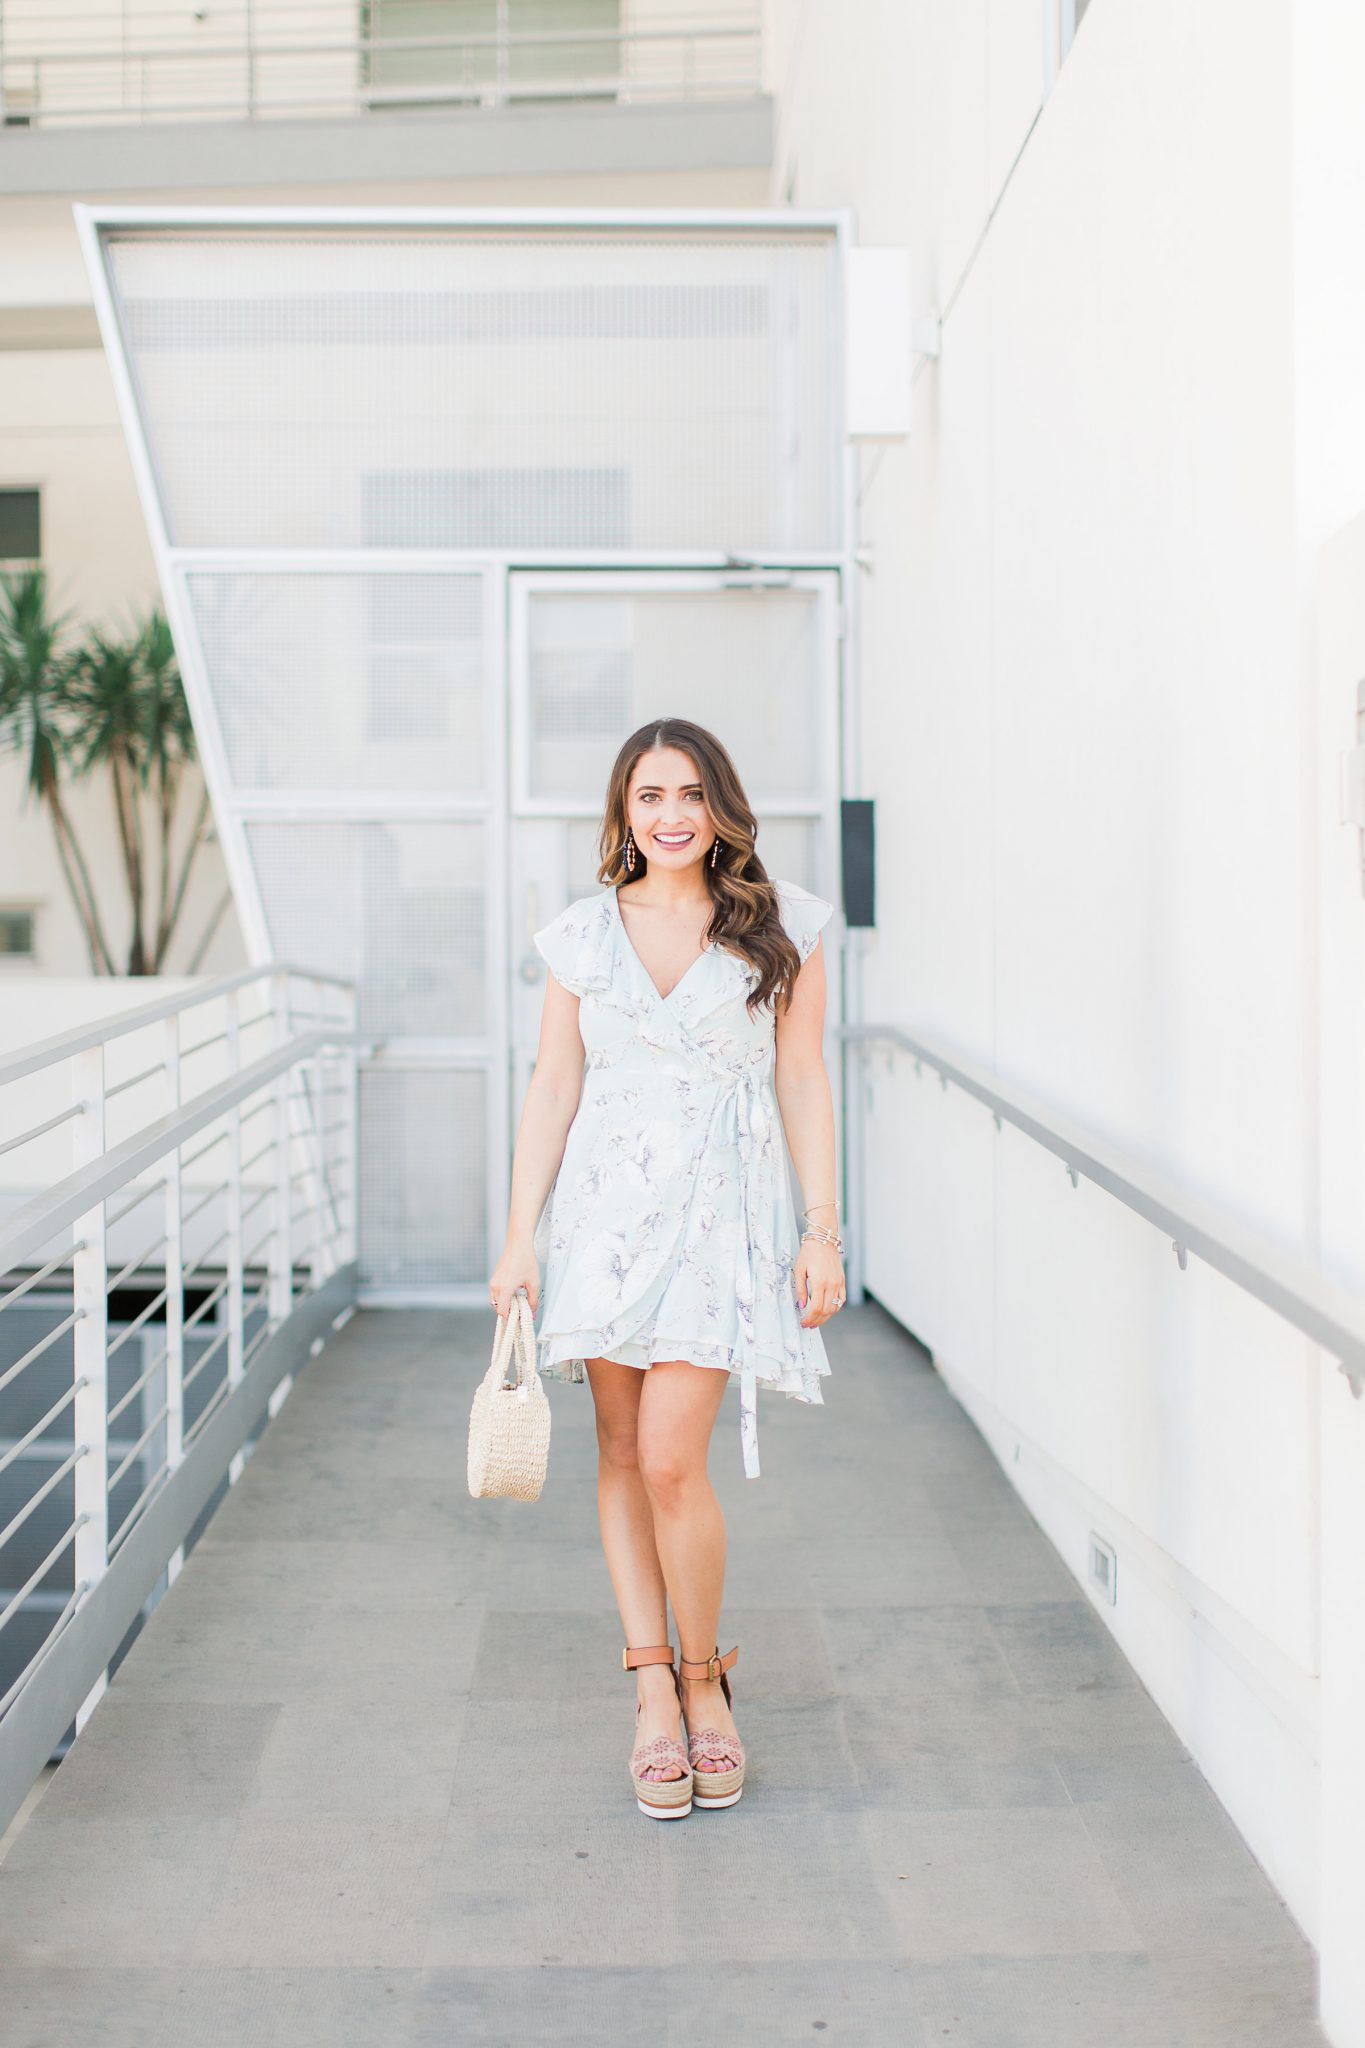 Blue floral wrap dress - My Favorite Cute Easter Dresses by popular Orange County fashion blogger Maxie Elise